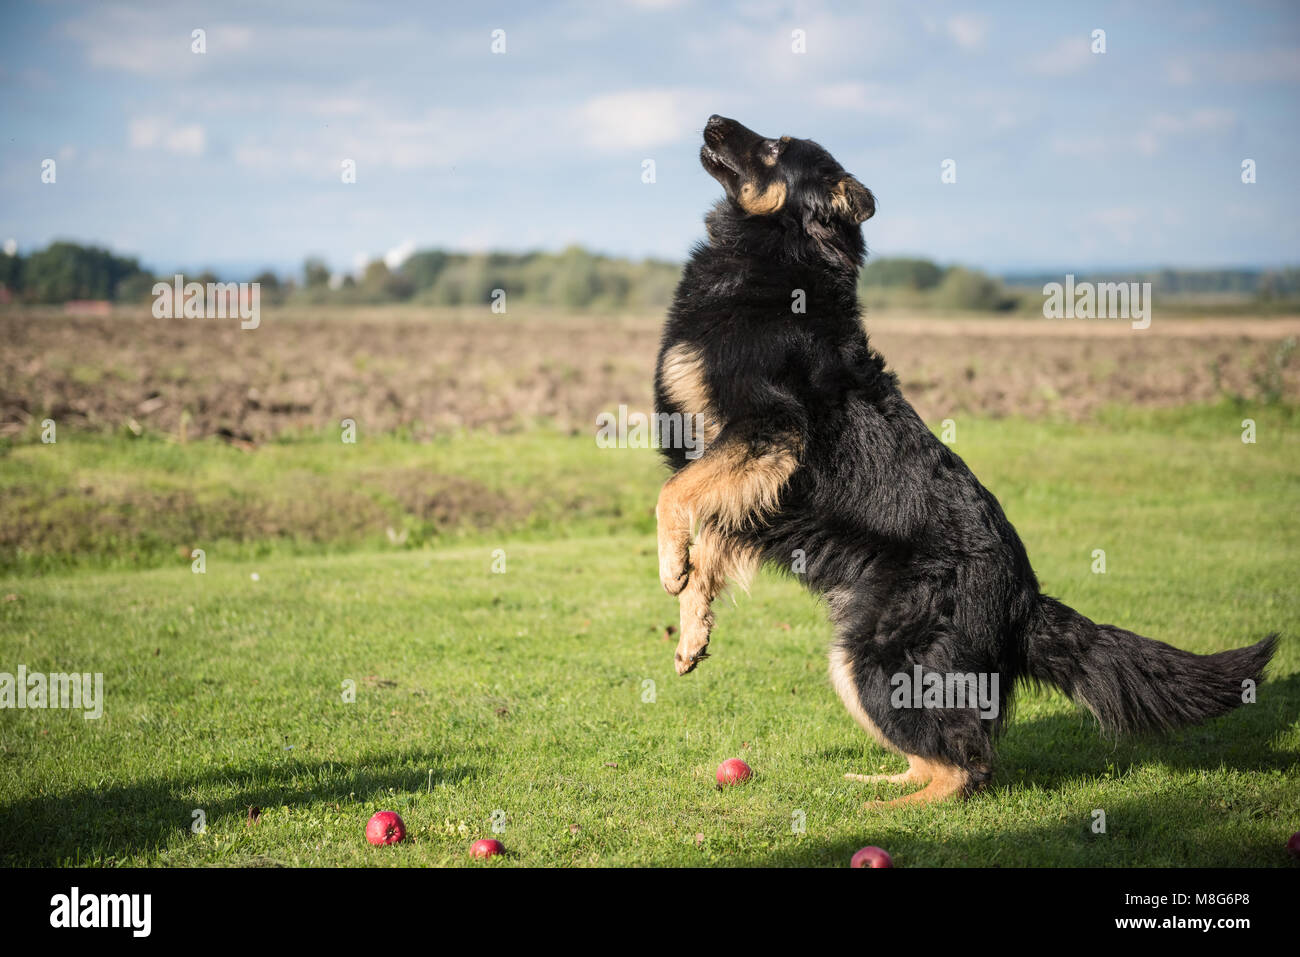 Young Bohemian Shepherd jumps in garden during a sunny day - Stock Image